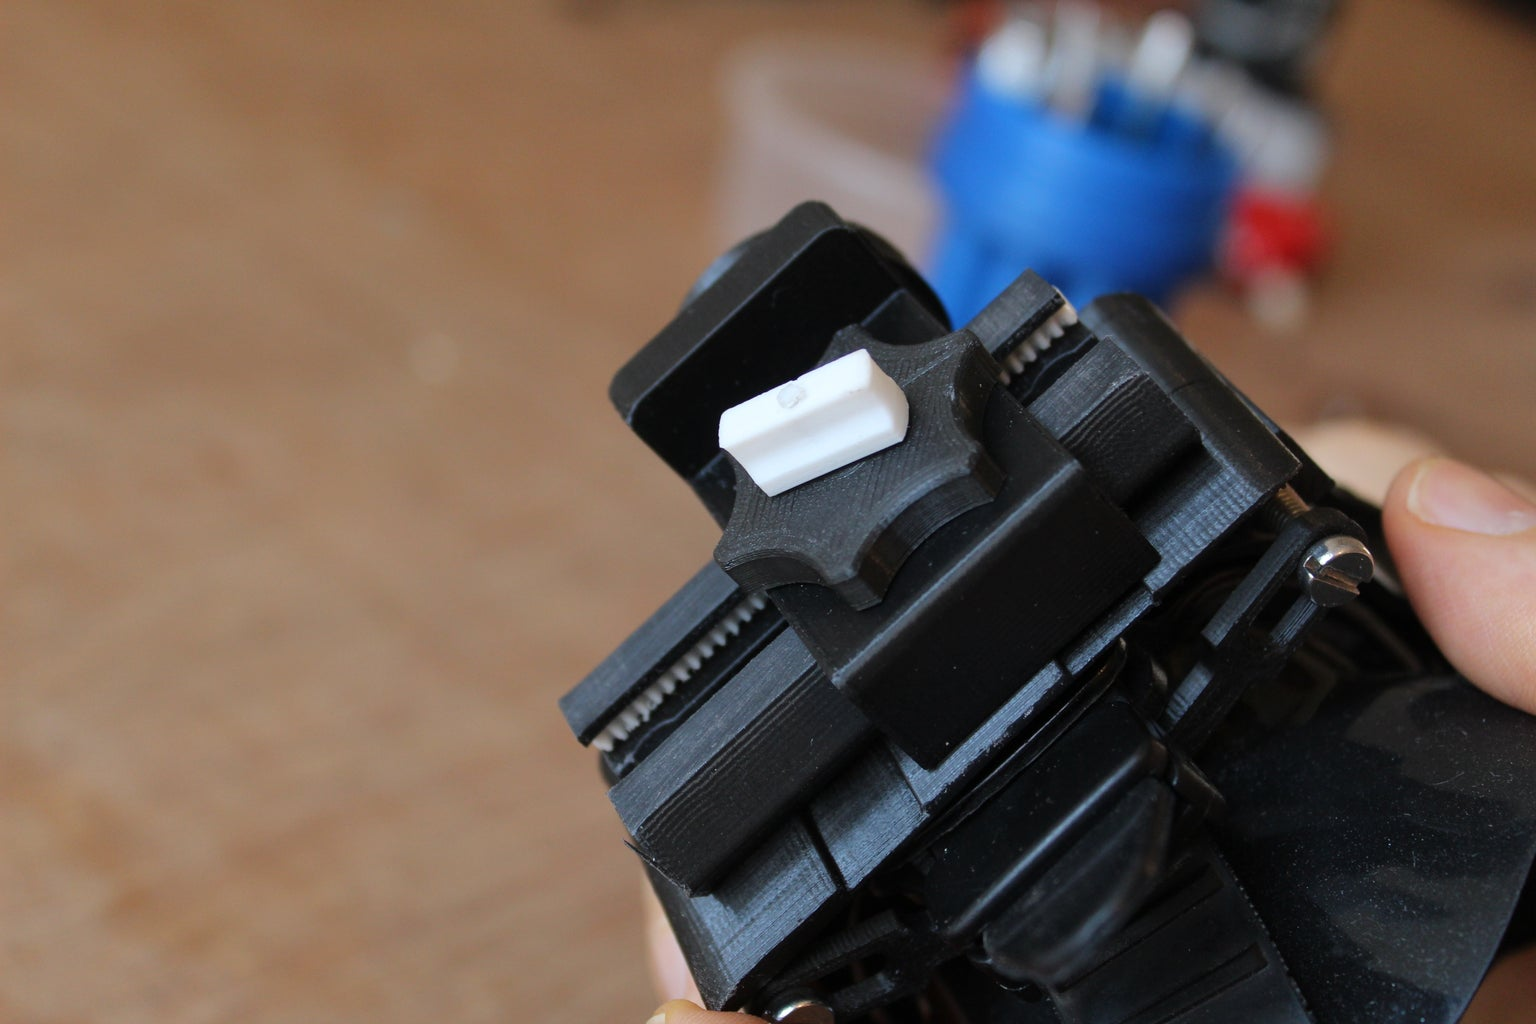 Assembling and Using the Lens Frame and Sliding Mechanism